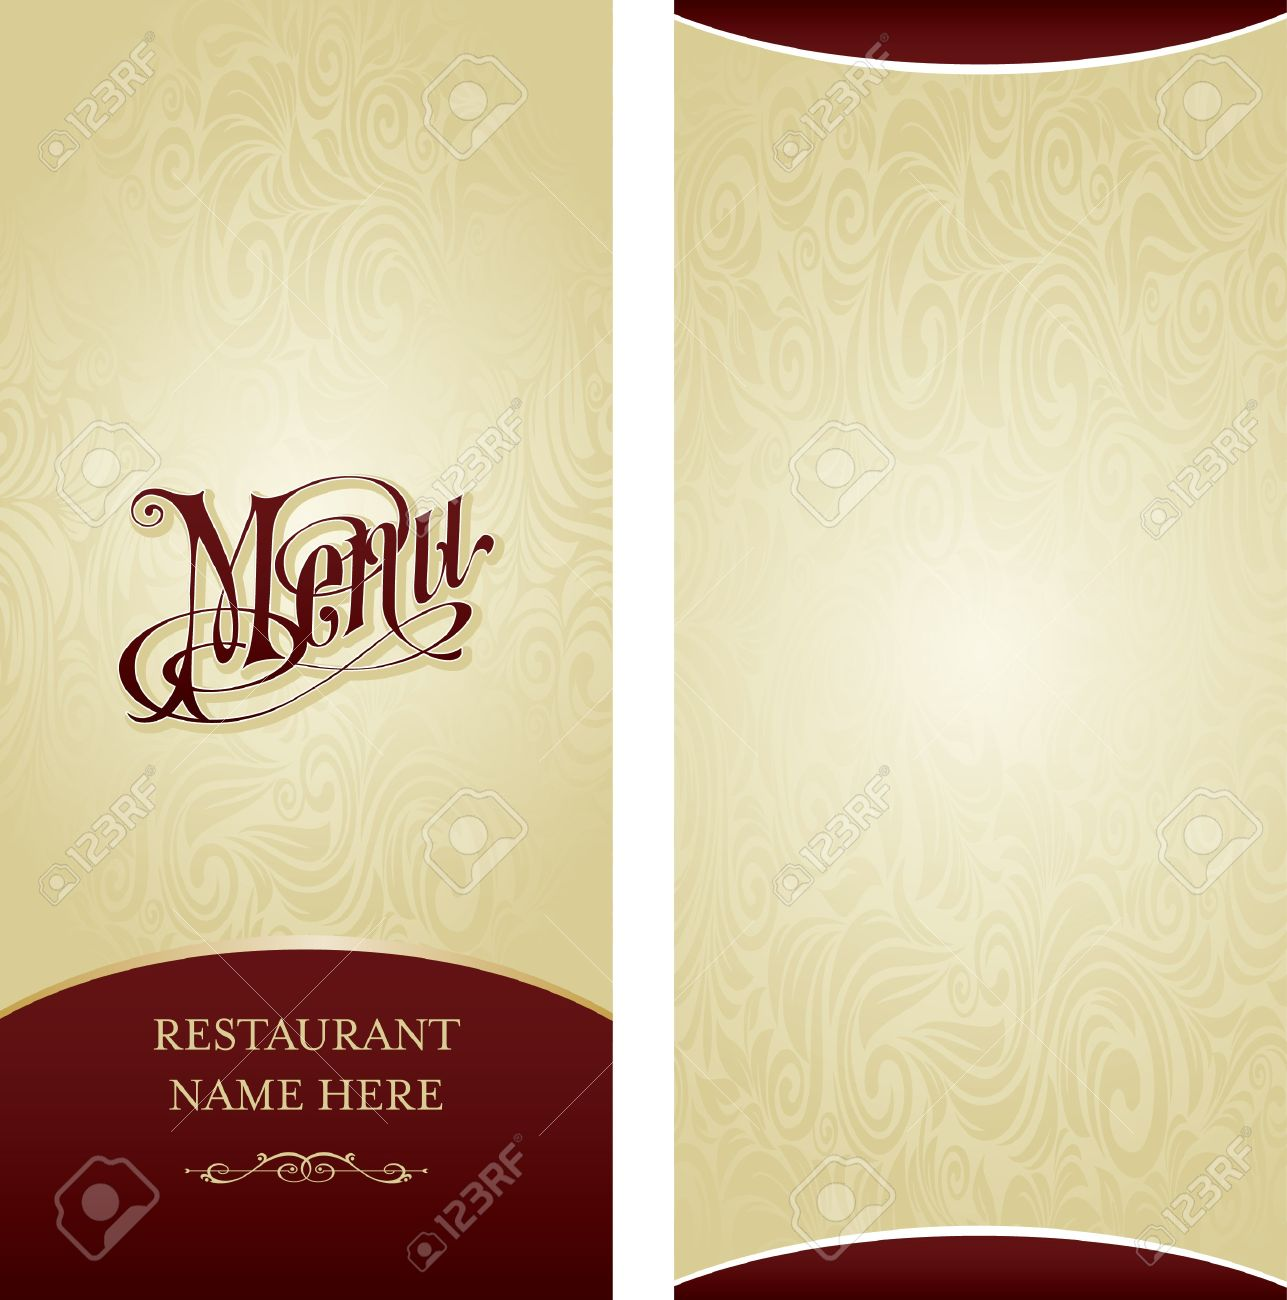 Menu Design Template Royalty Free Cliparts, Vectors, And Stock ...